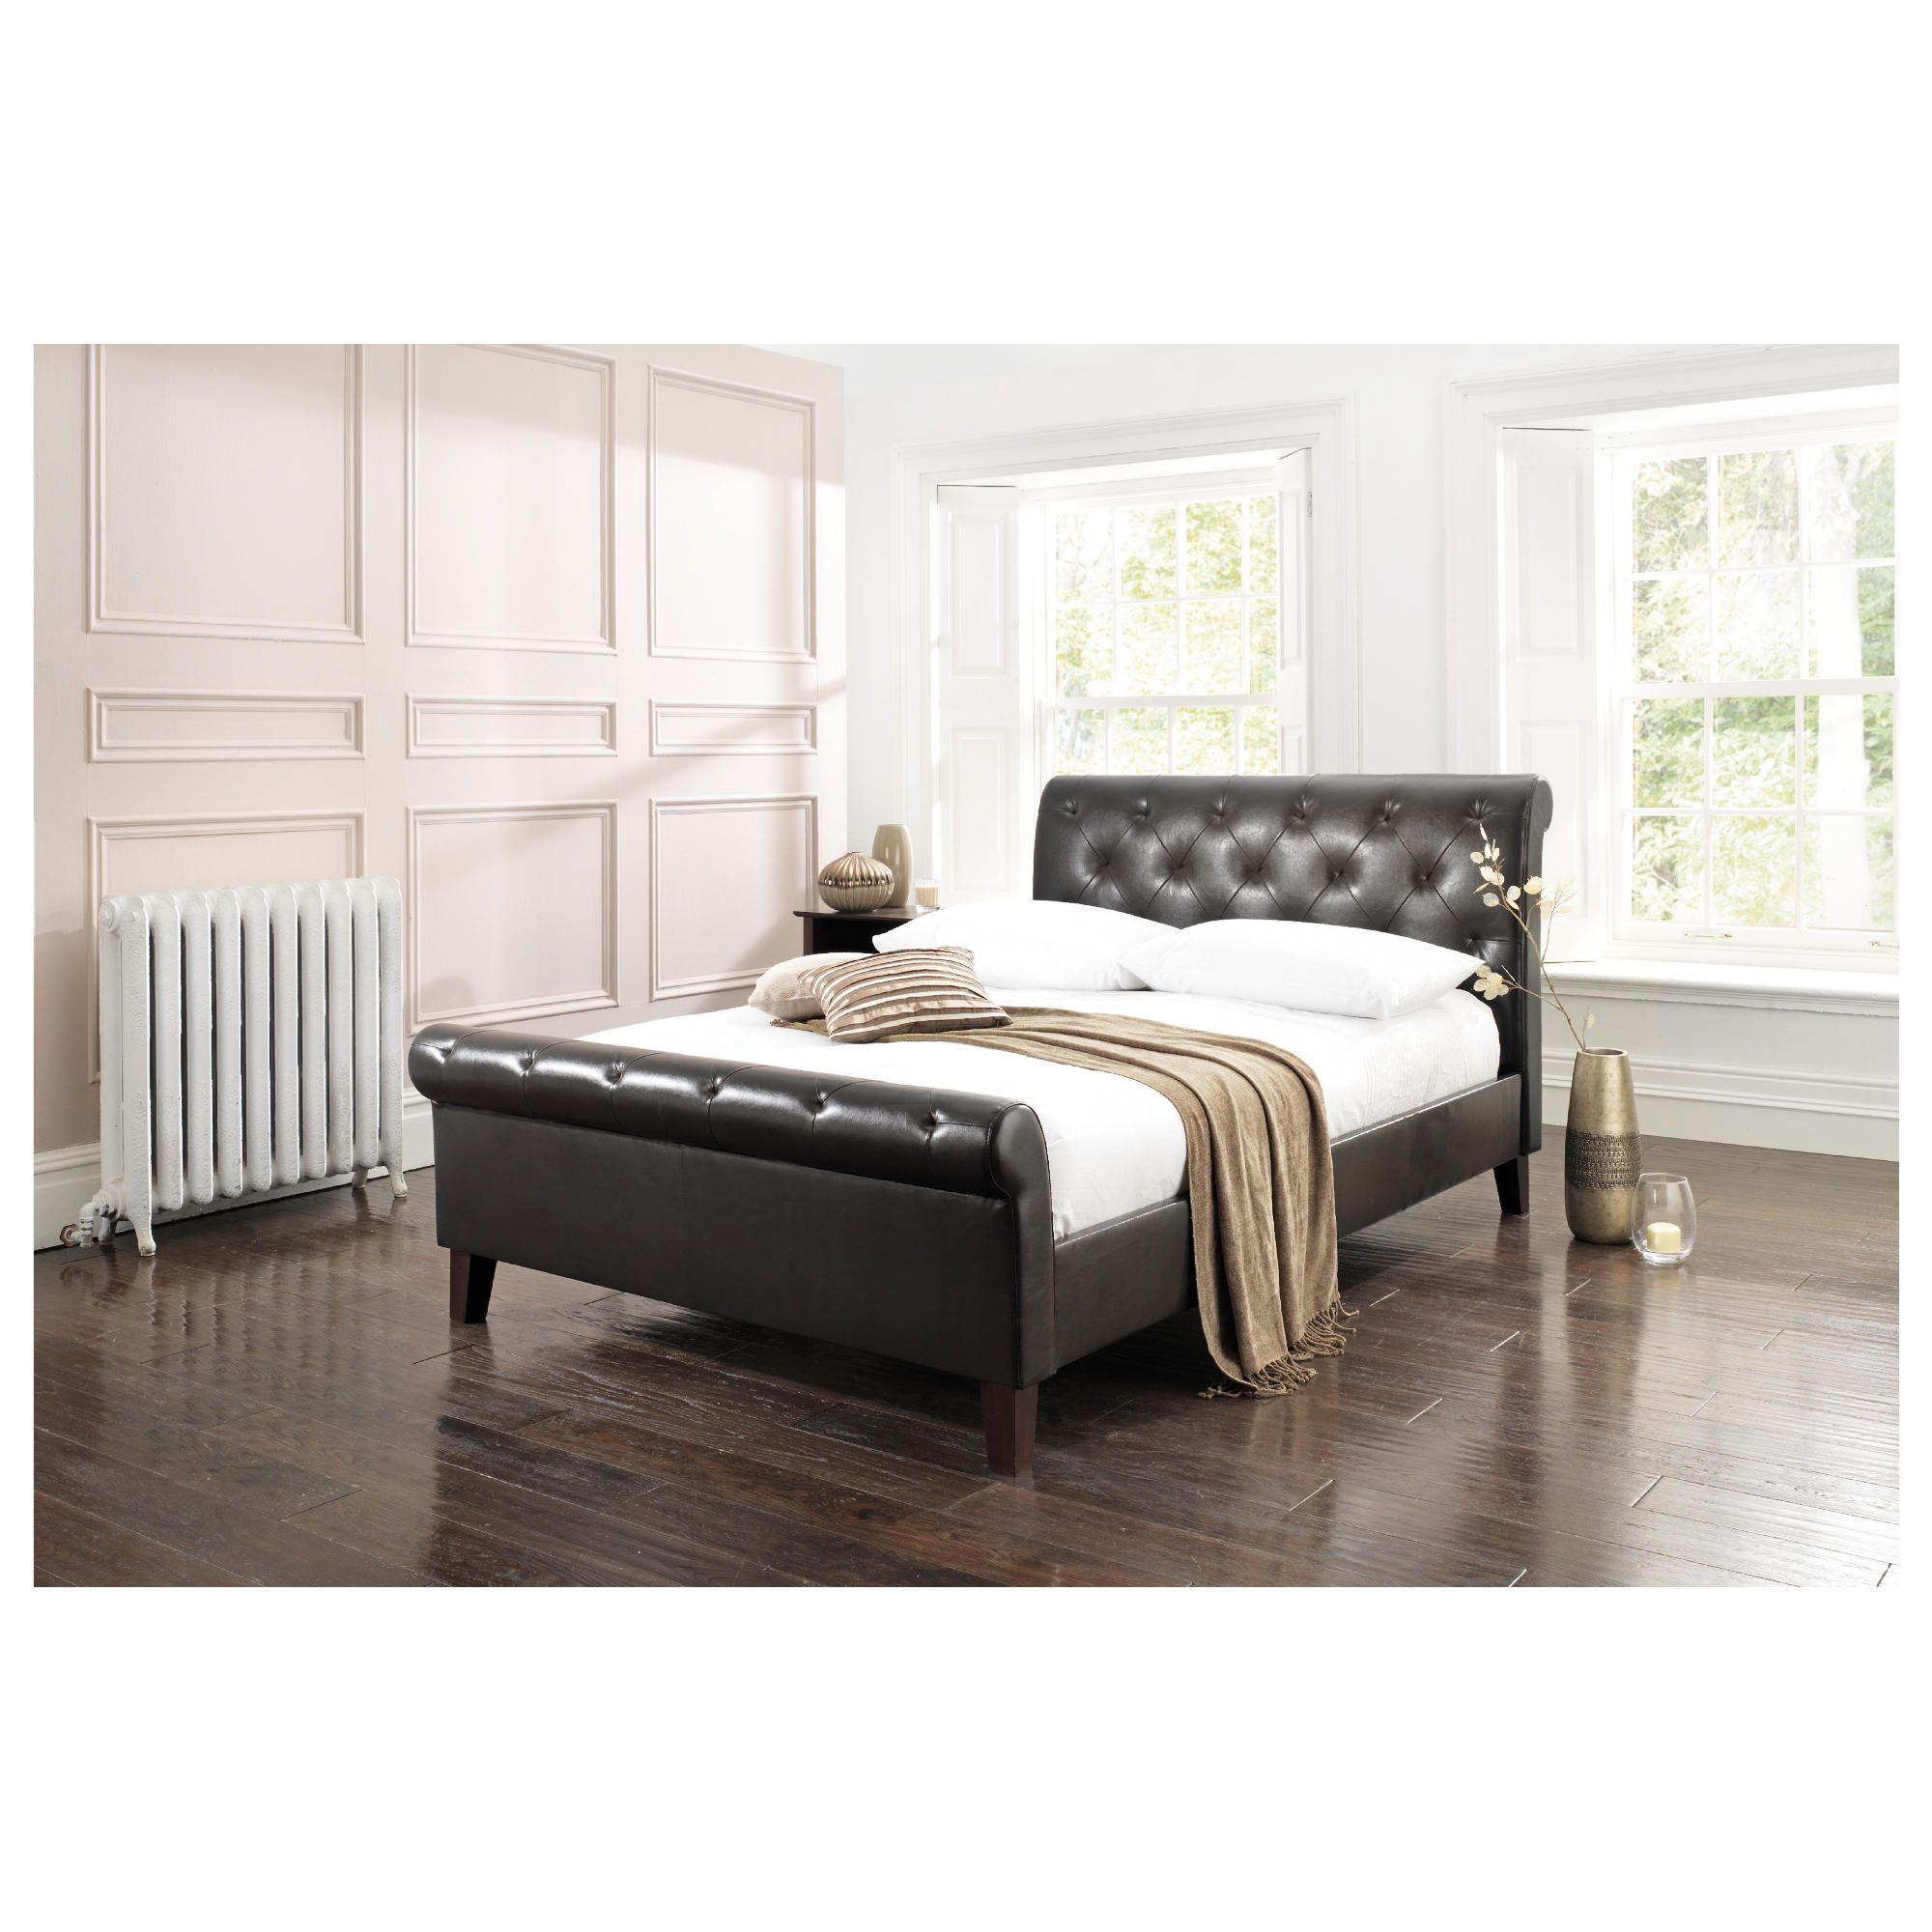 York King Padded Scroll Bed Frame, Brown at Tesco Direct